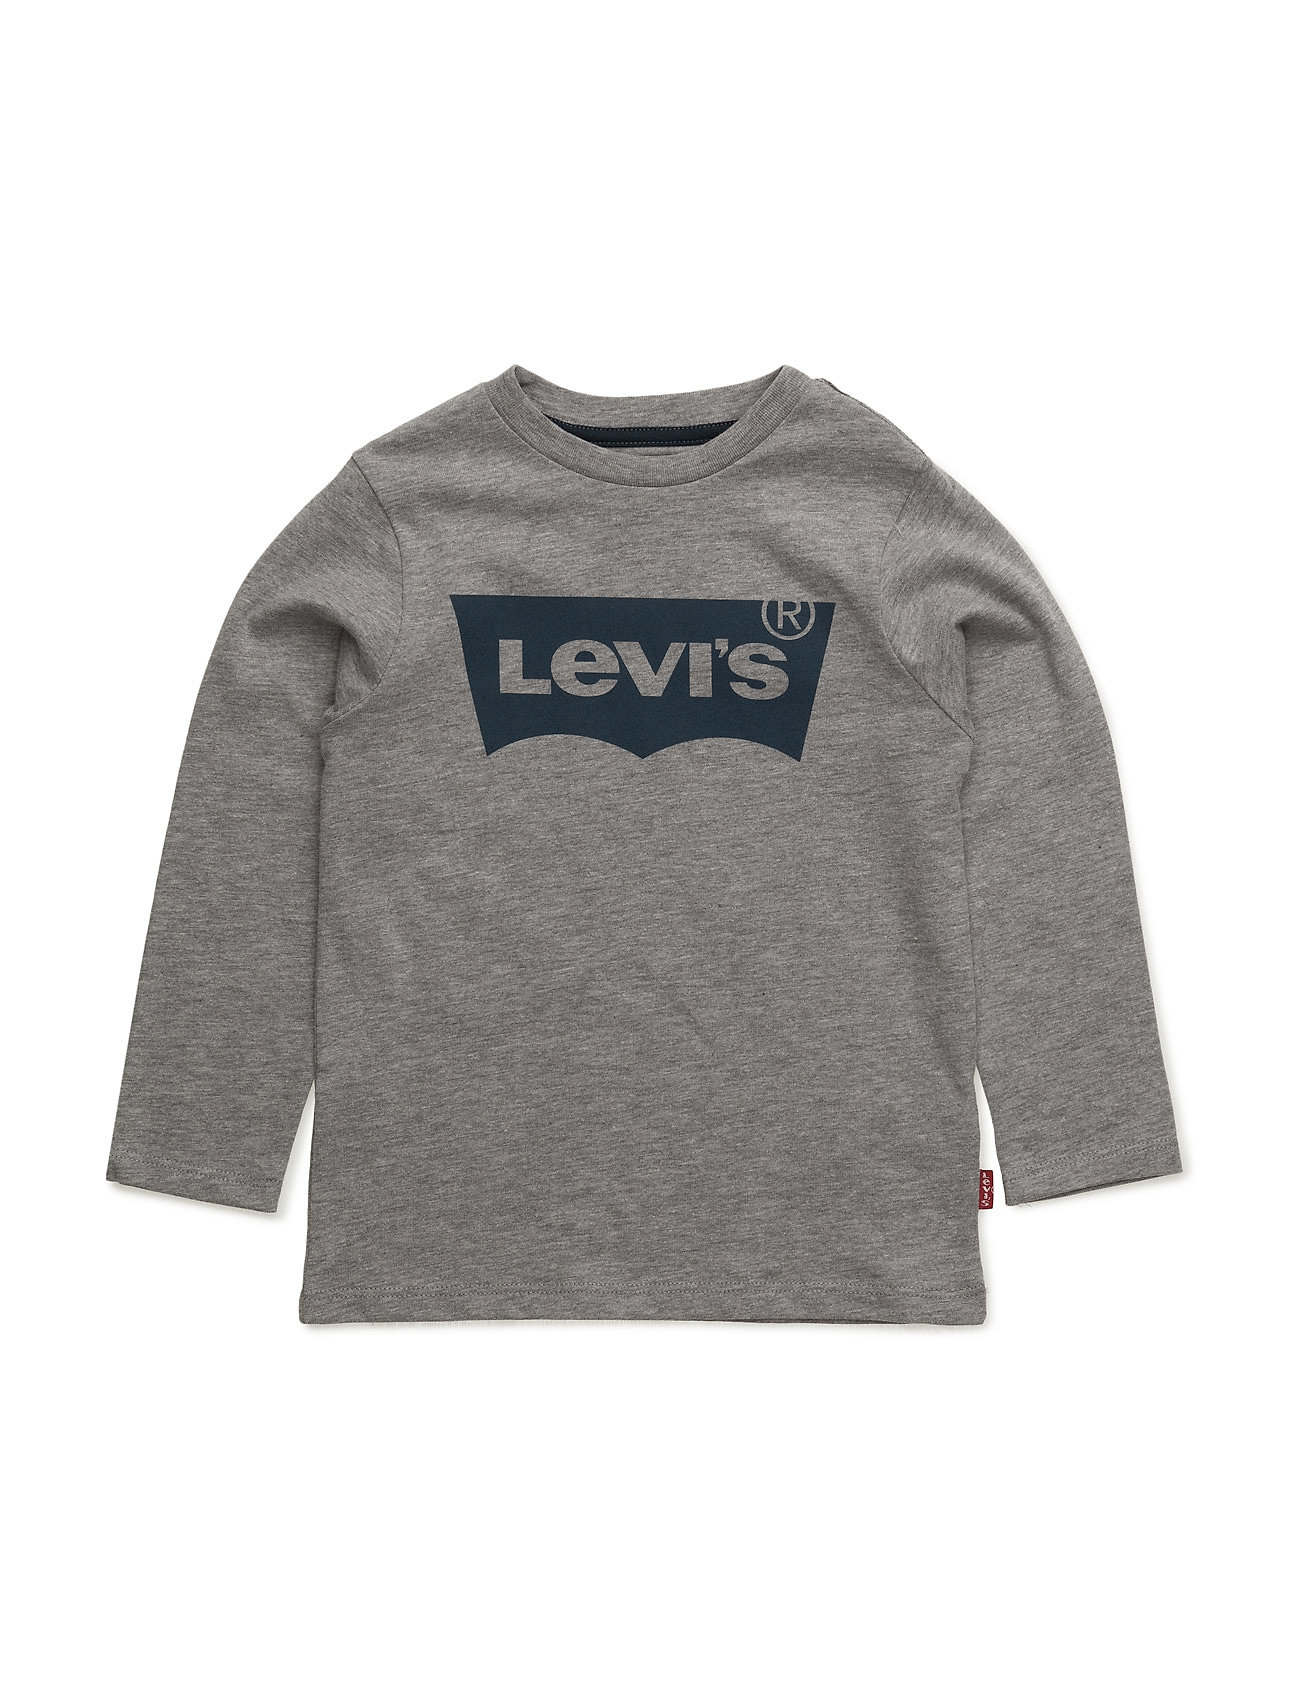 Levi's LS-TEE NOS - CHINA GREY